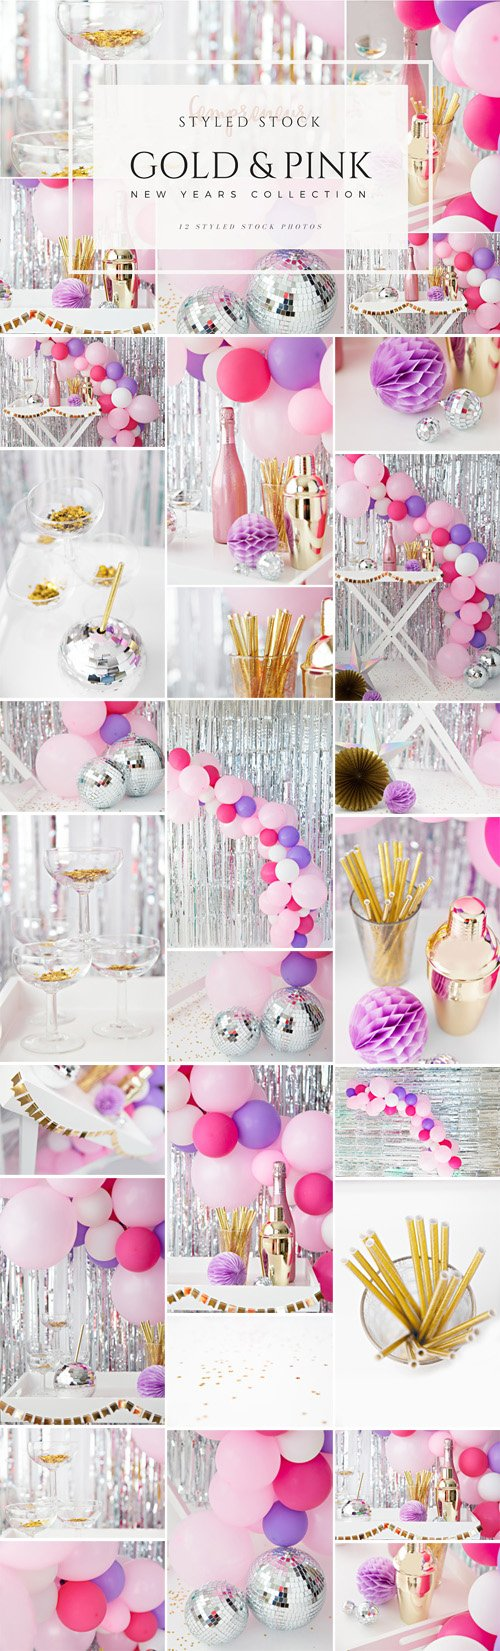 CM - Gold & Pink New Years Party Stock Photos